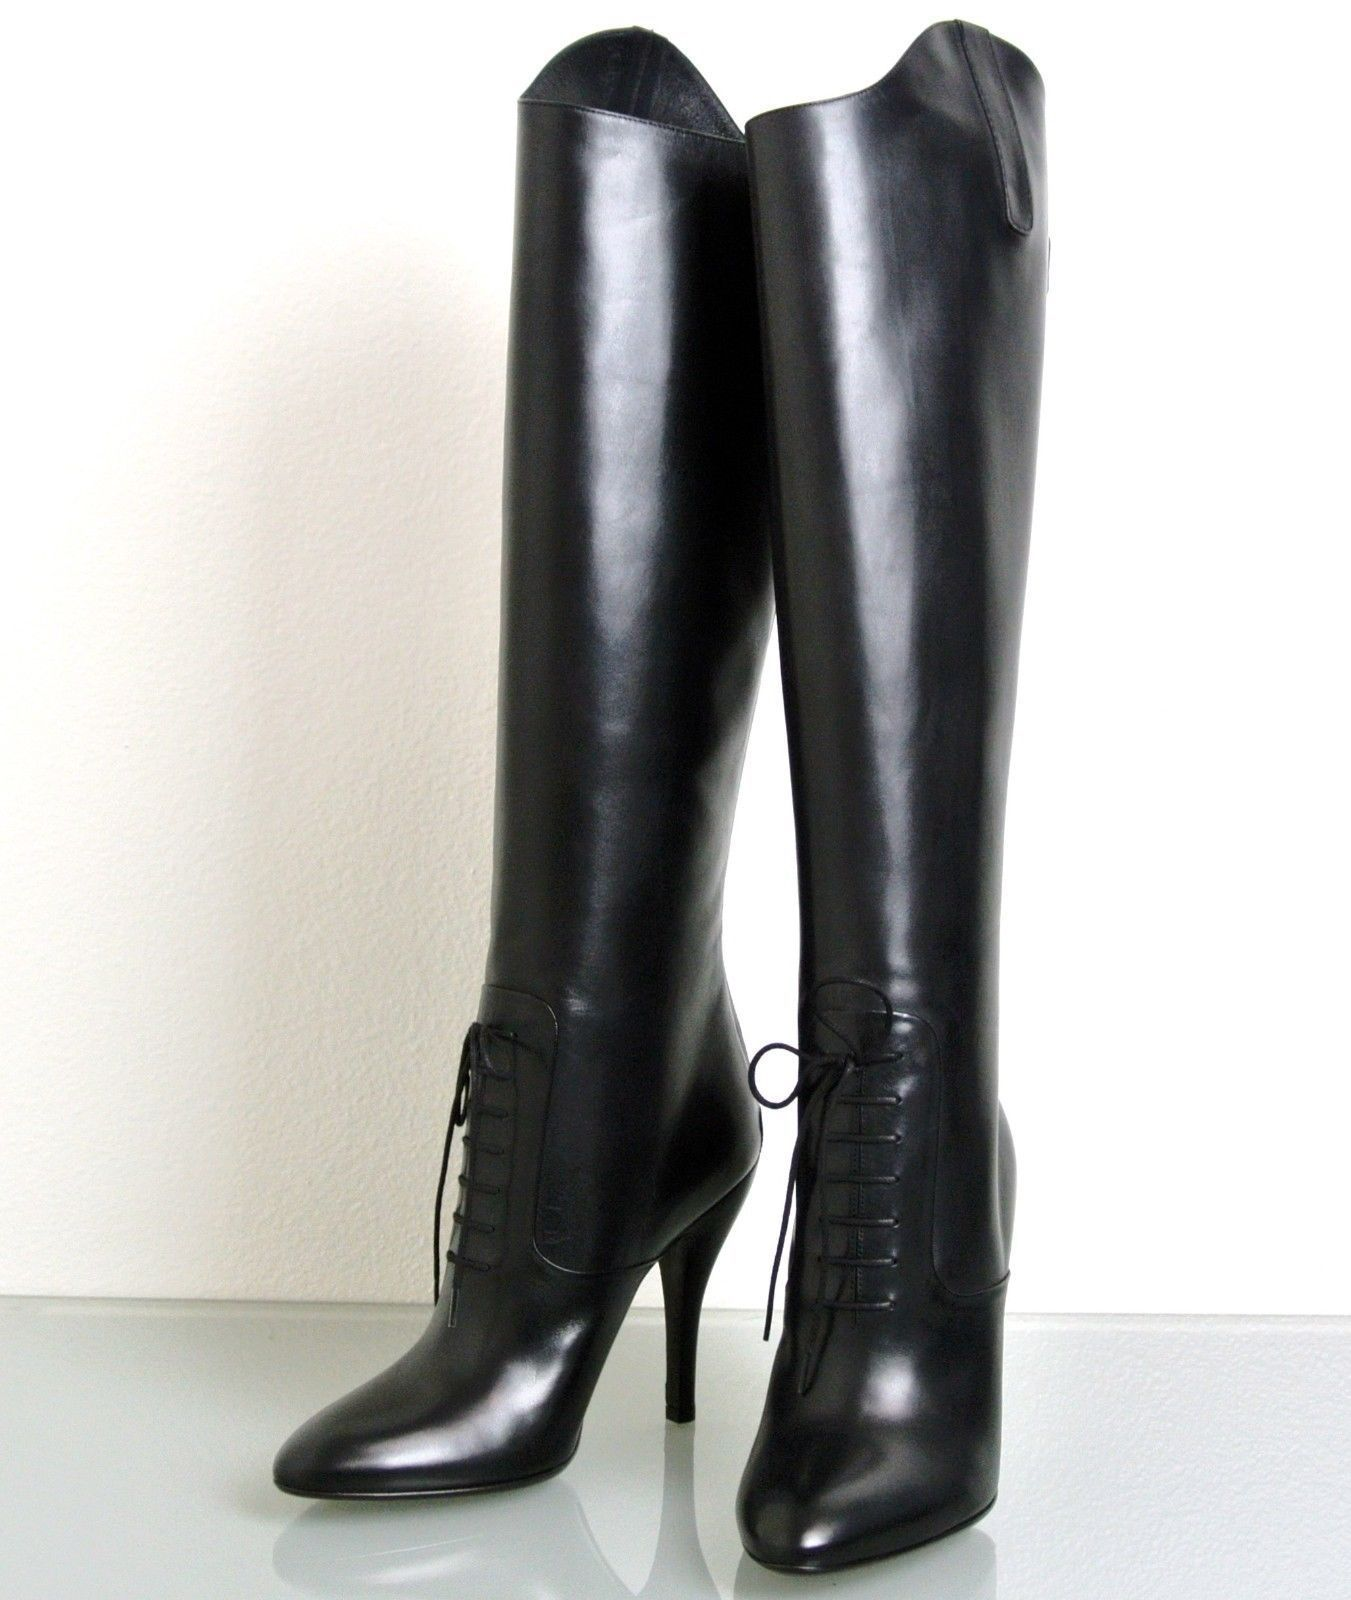 New Authentic Gucci Elizabeth High Heel Leather Riding Boots